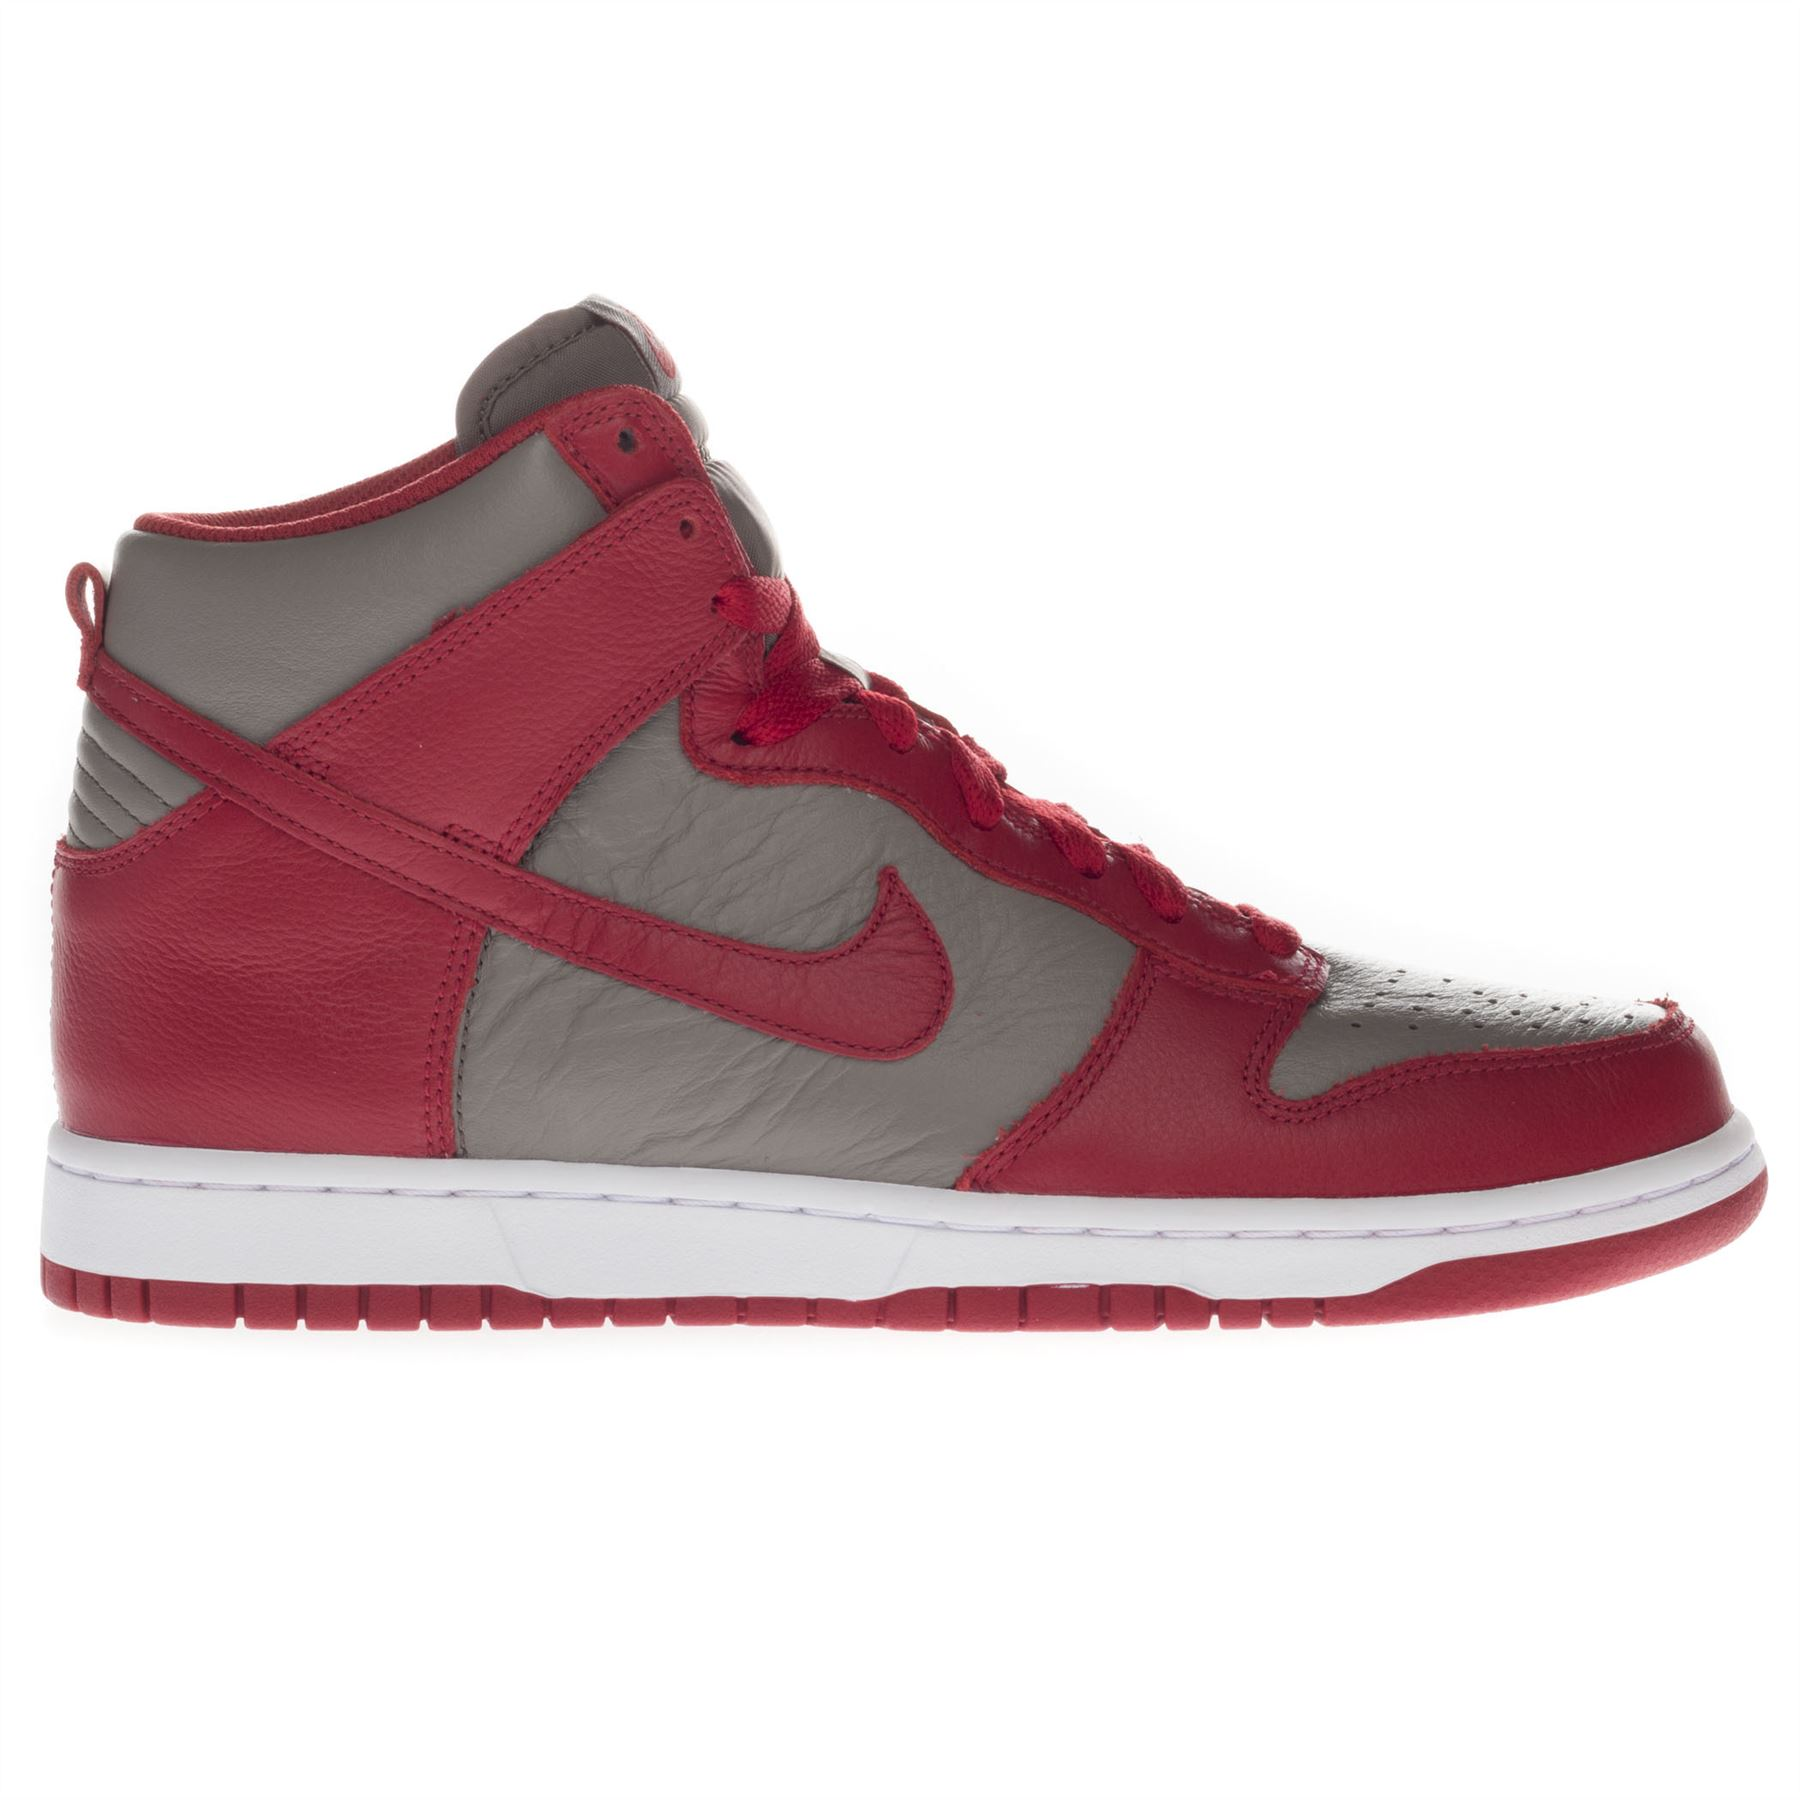 Nike-Men-039-s-Dunk-Retro-QS-Basketball-